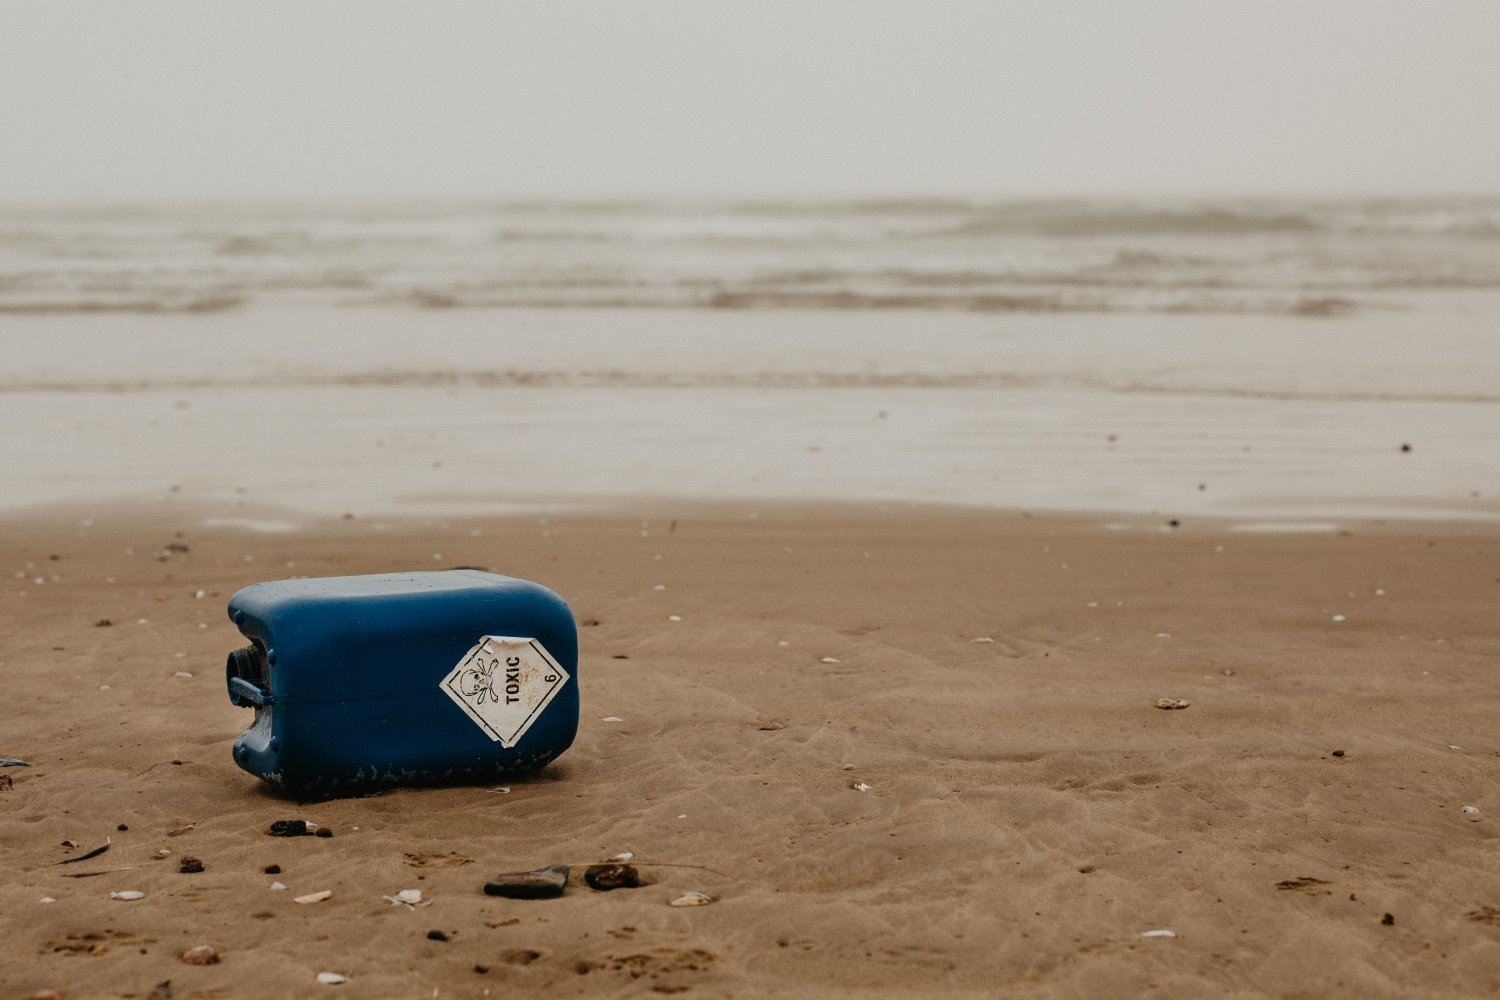 a toxic container on a beach